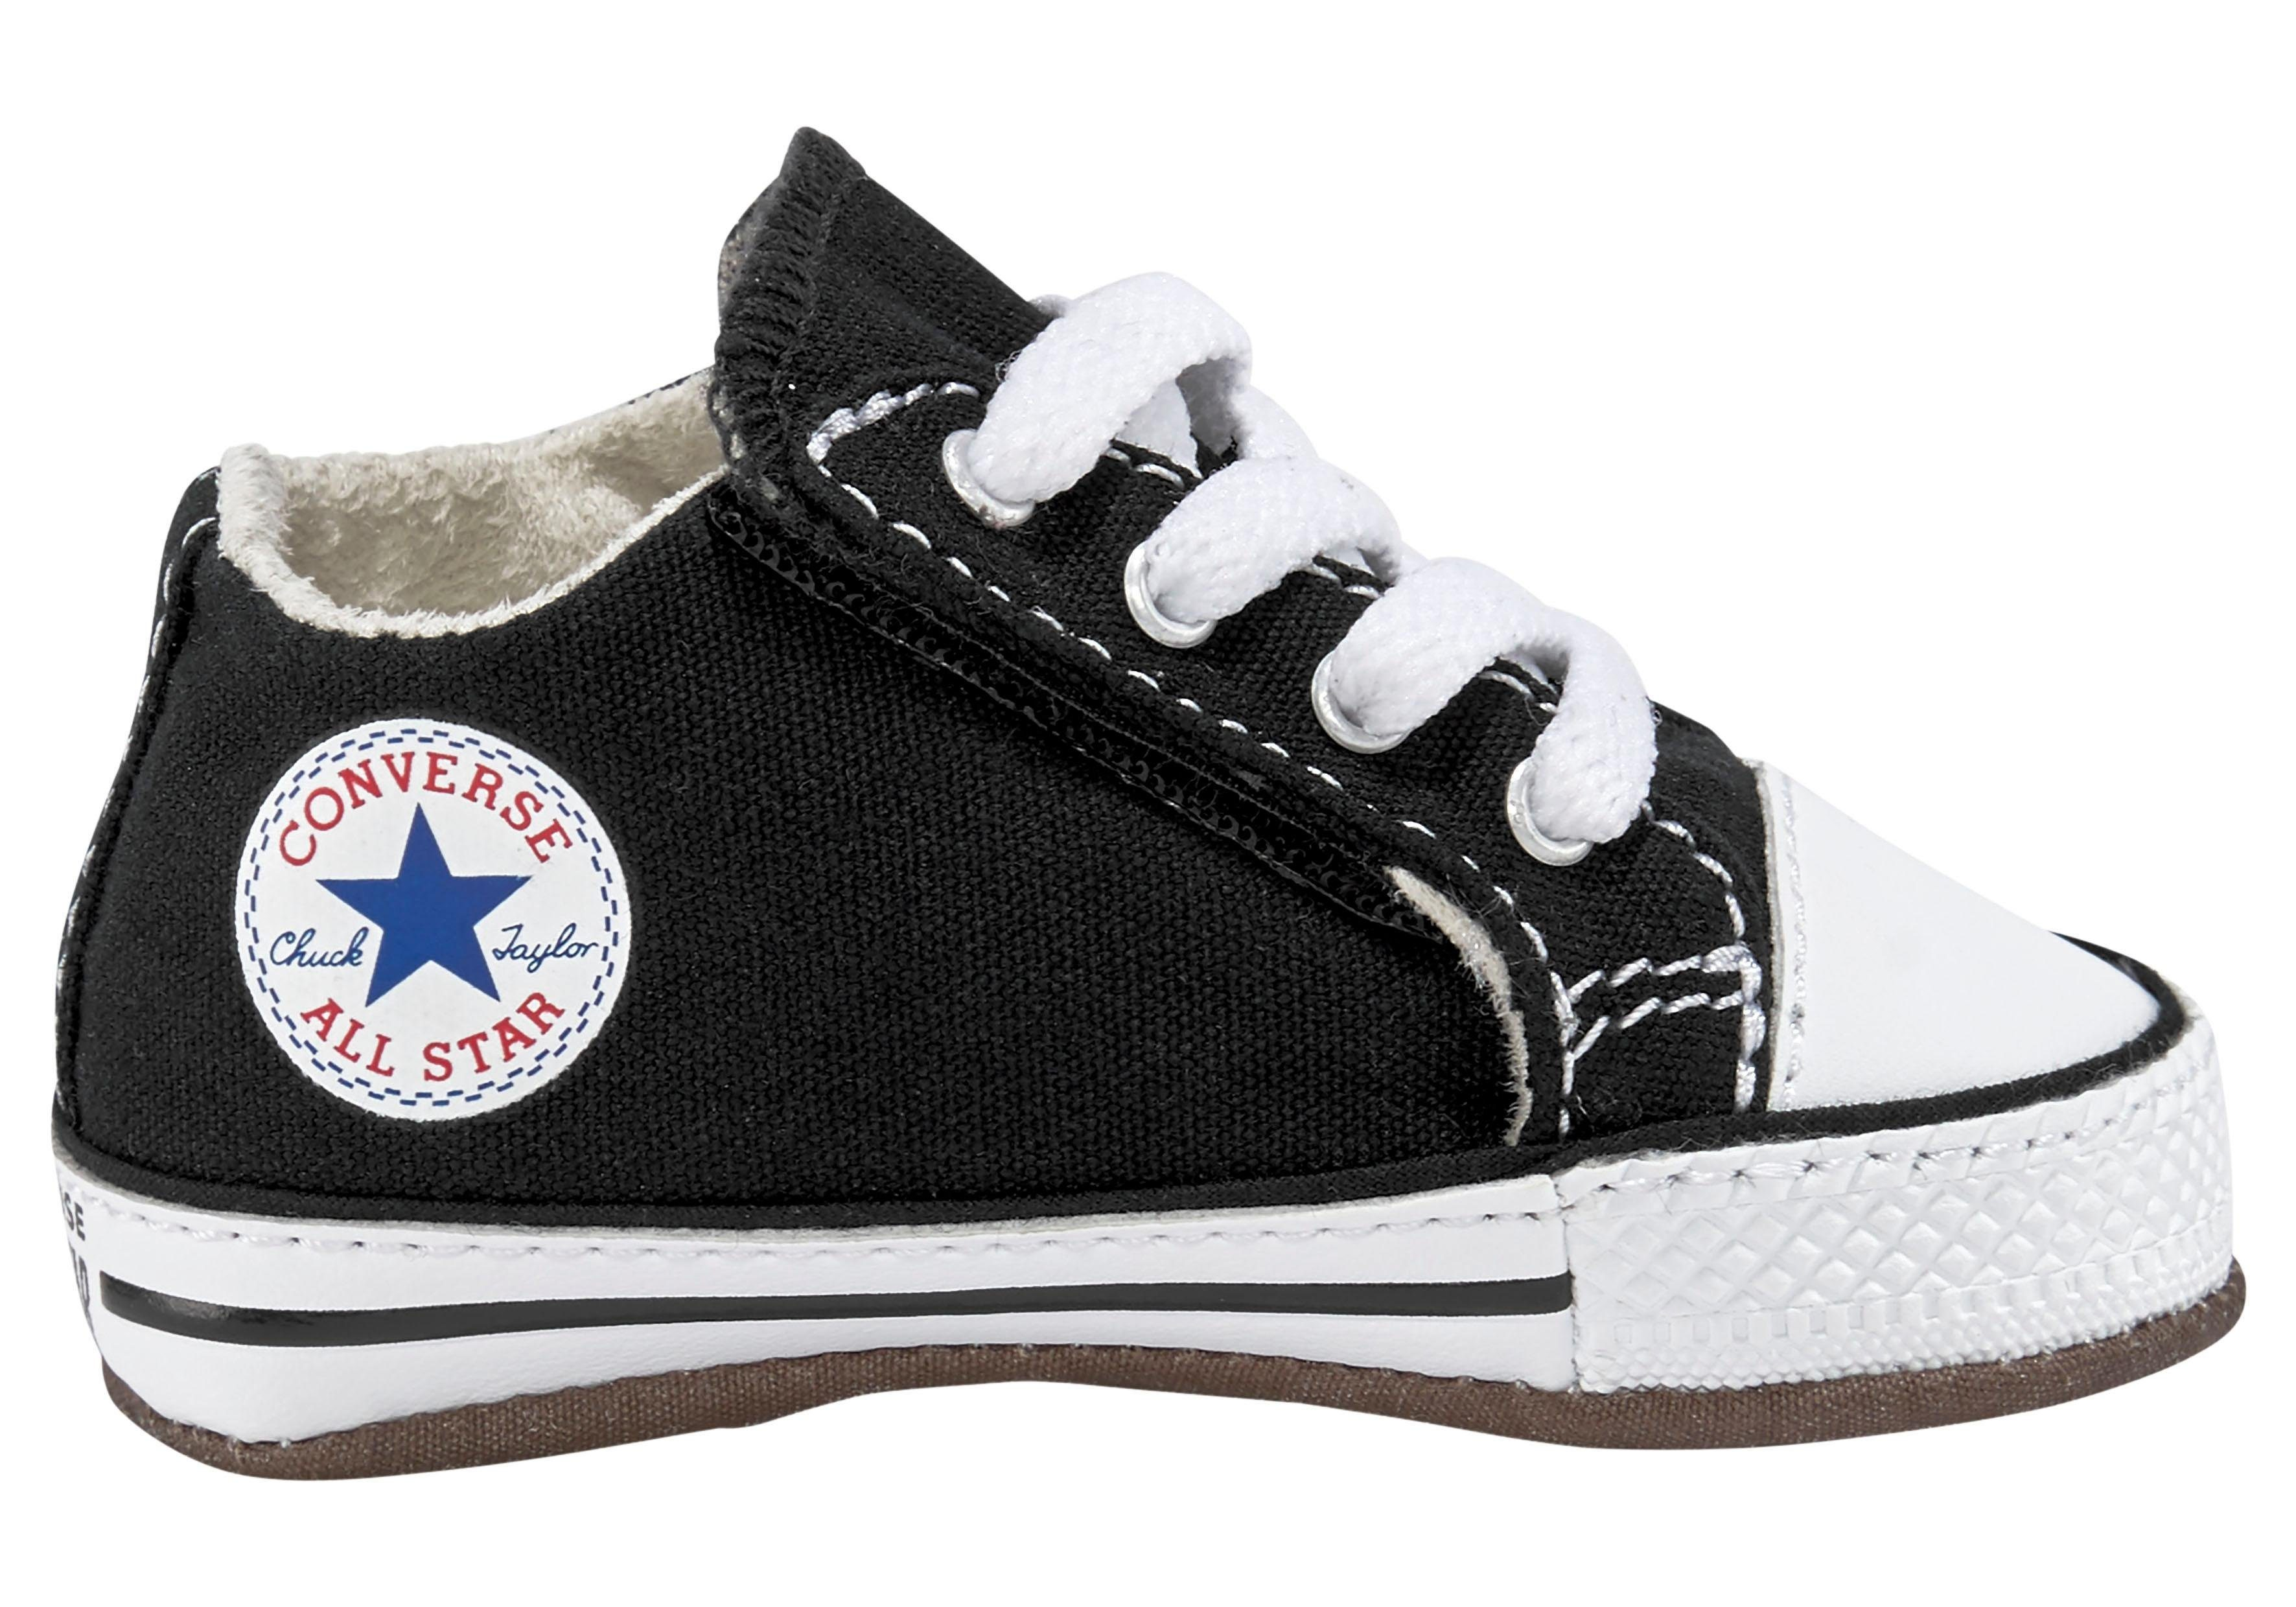 Converse »Chuck Taylor All Star Cribster Canvas Color Mid« Sneaker Baby online kaufen   OTTO